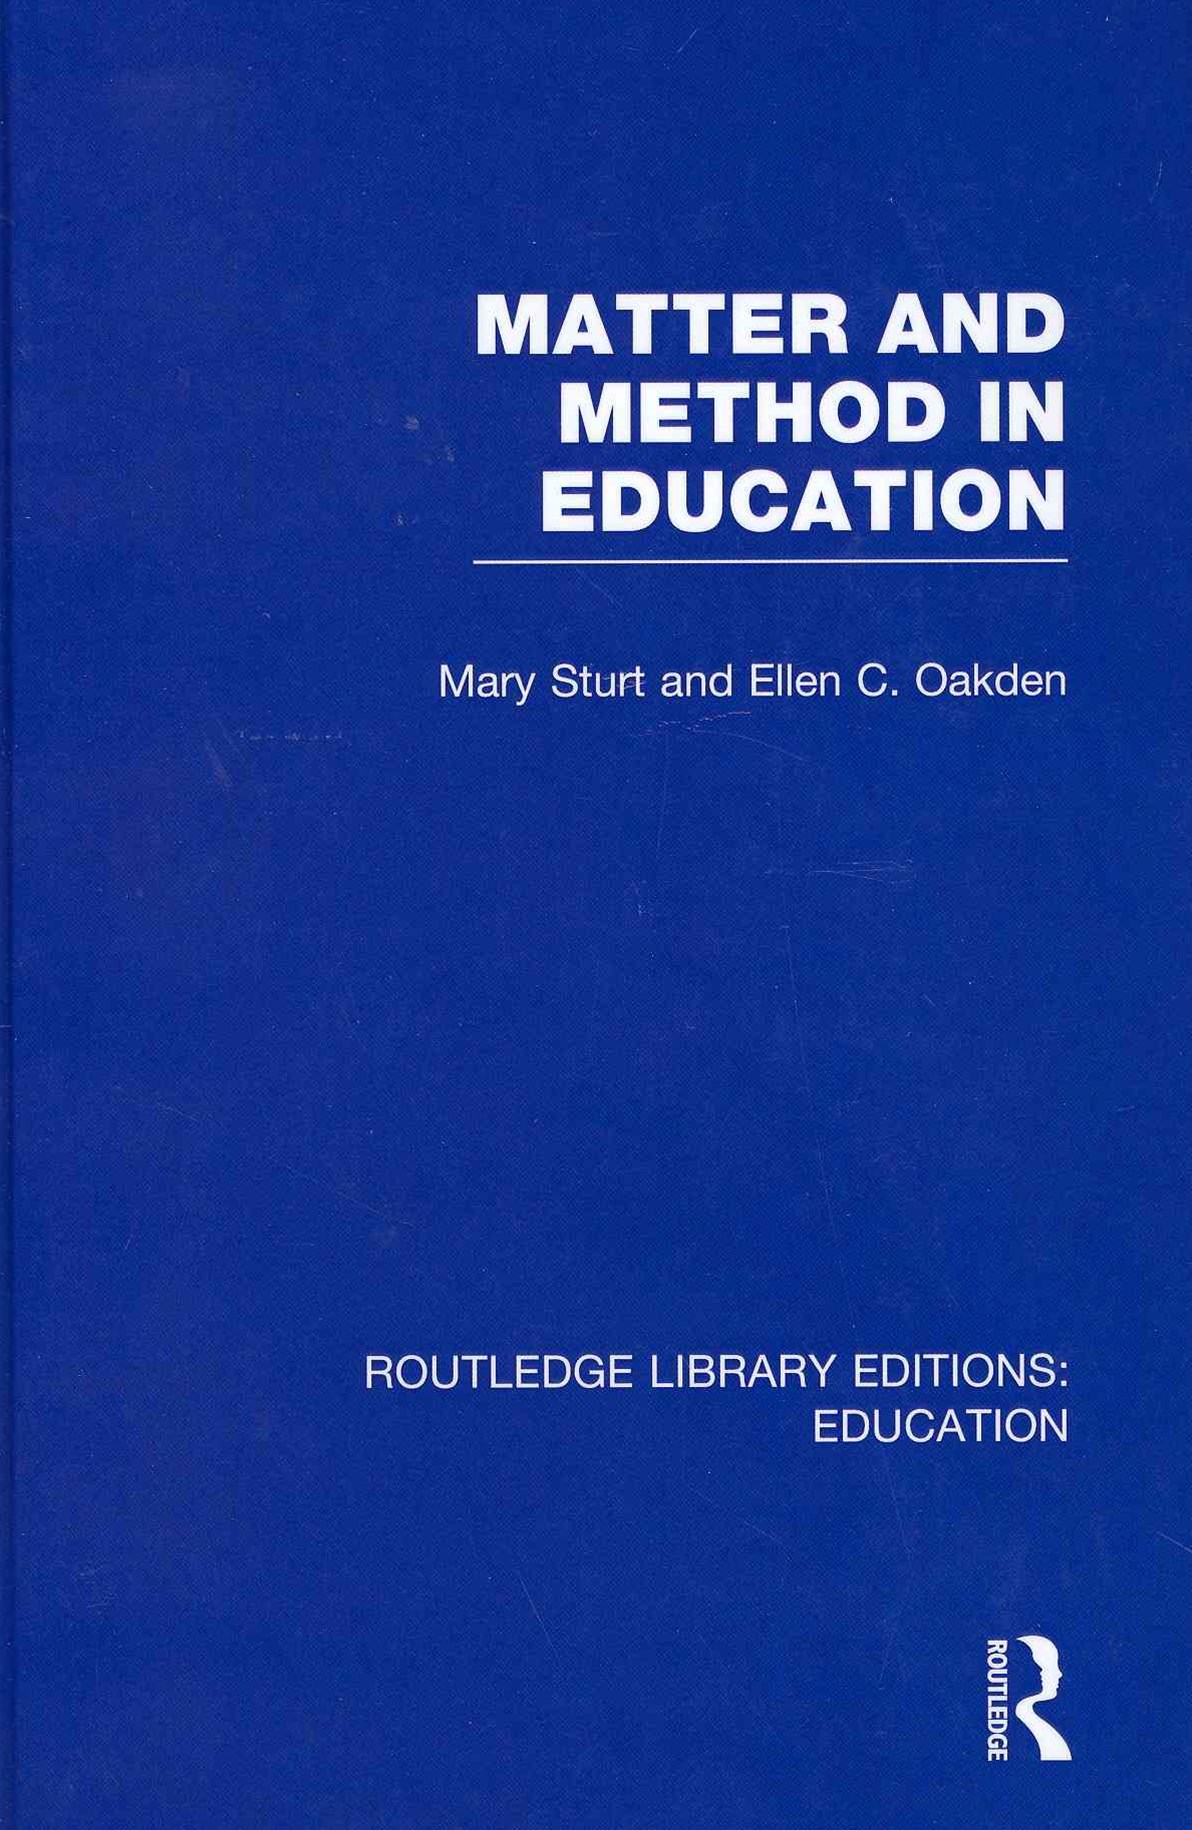 Matter and Method in Education